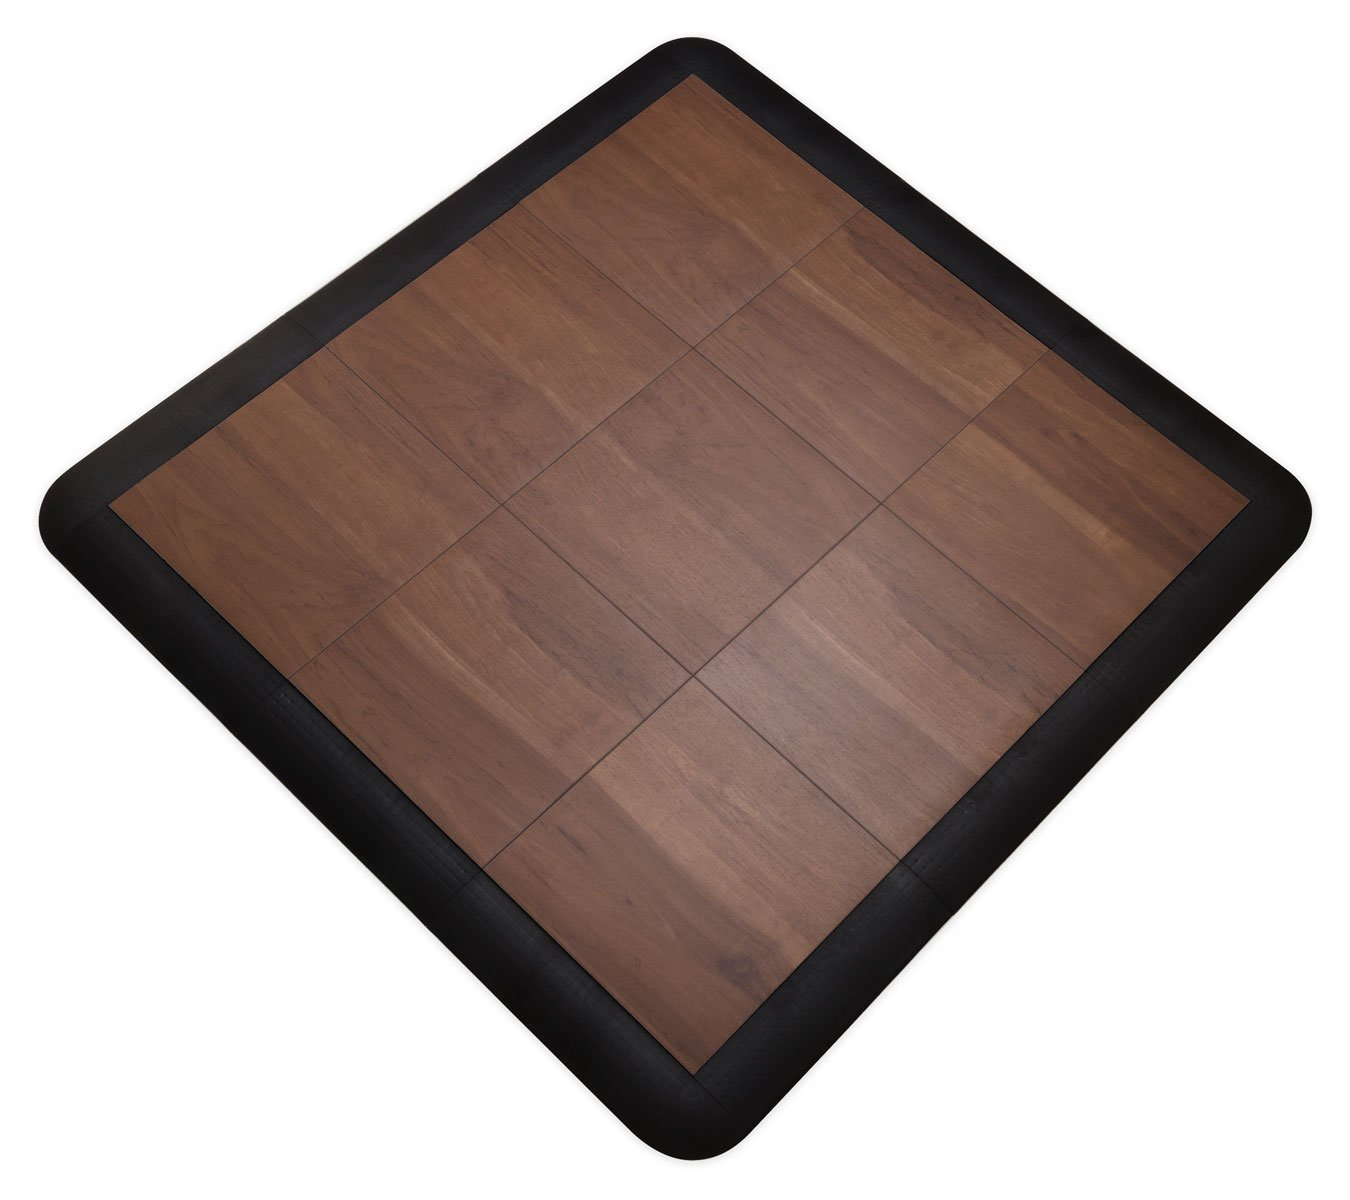 trade show booths IncStores 9 Piece Modular Tap Dance Set with Edge Pieces - Excellent for use as portable dance floors Teak and general flooring